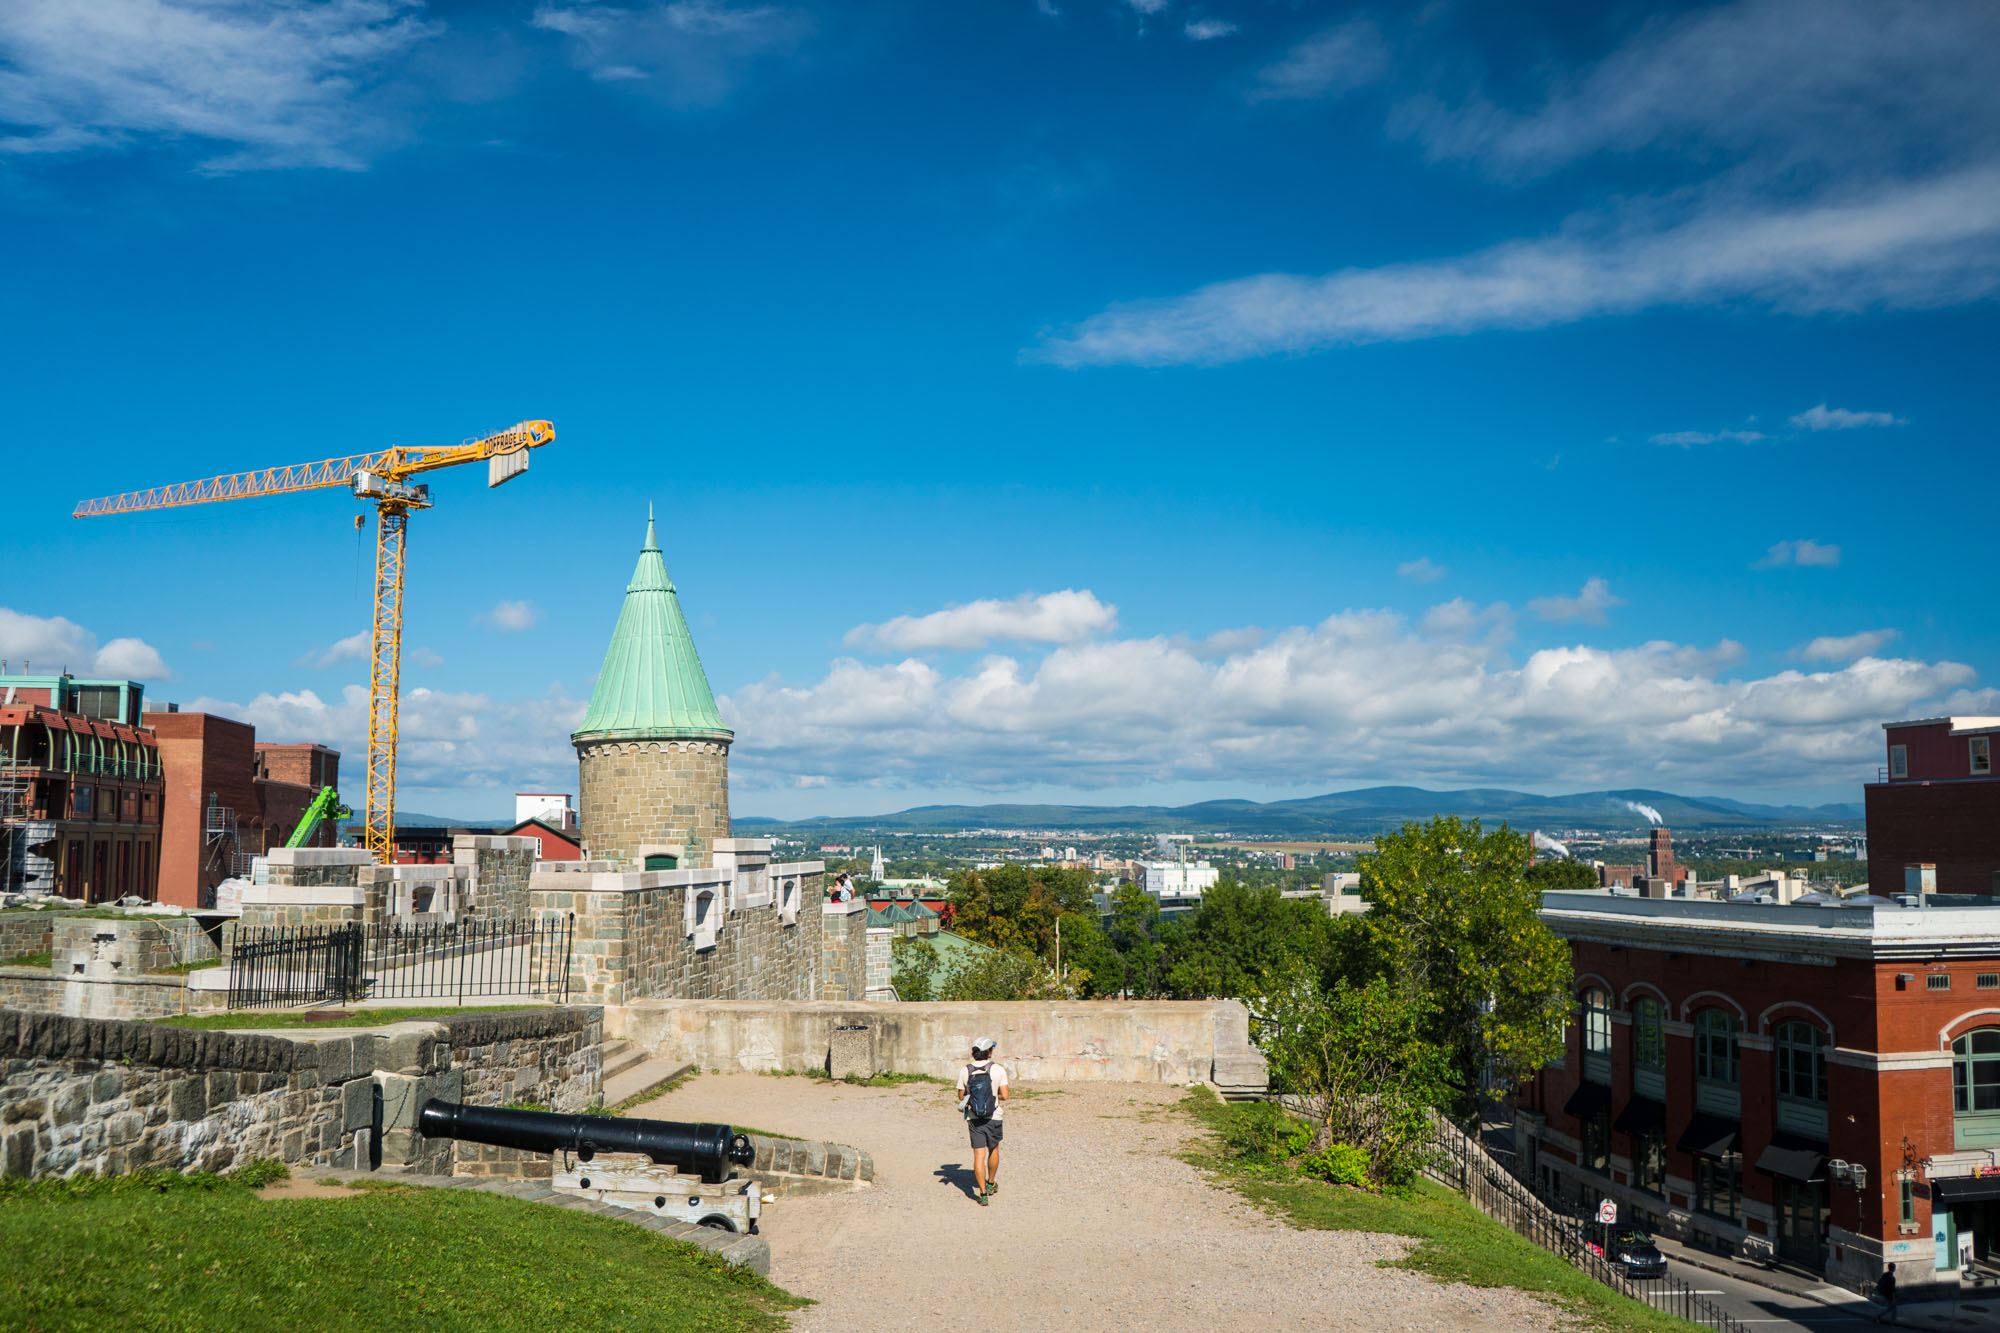 Walking along the walls of Old Town Quebec